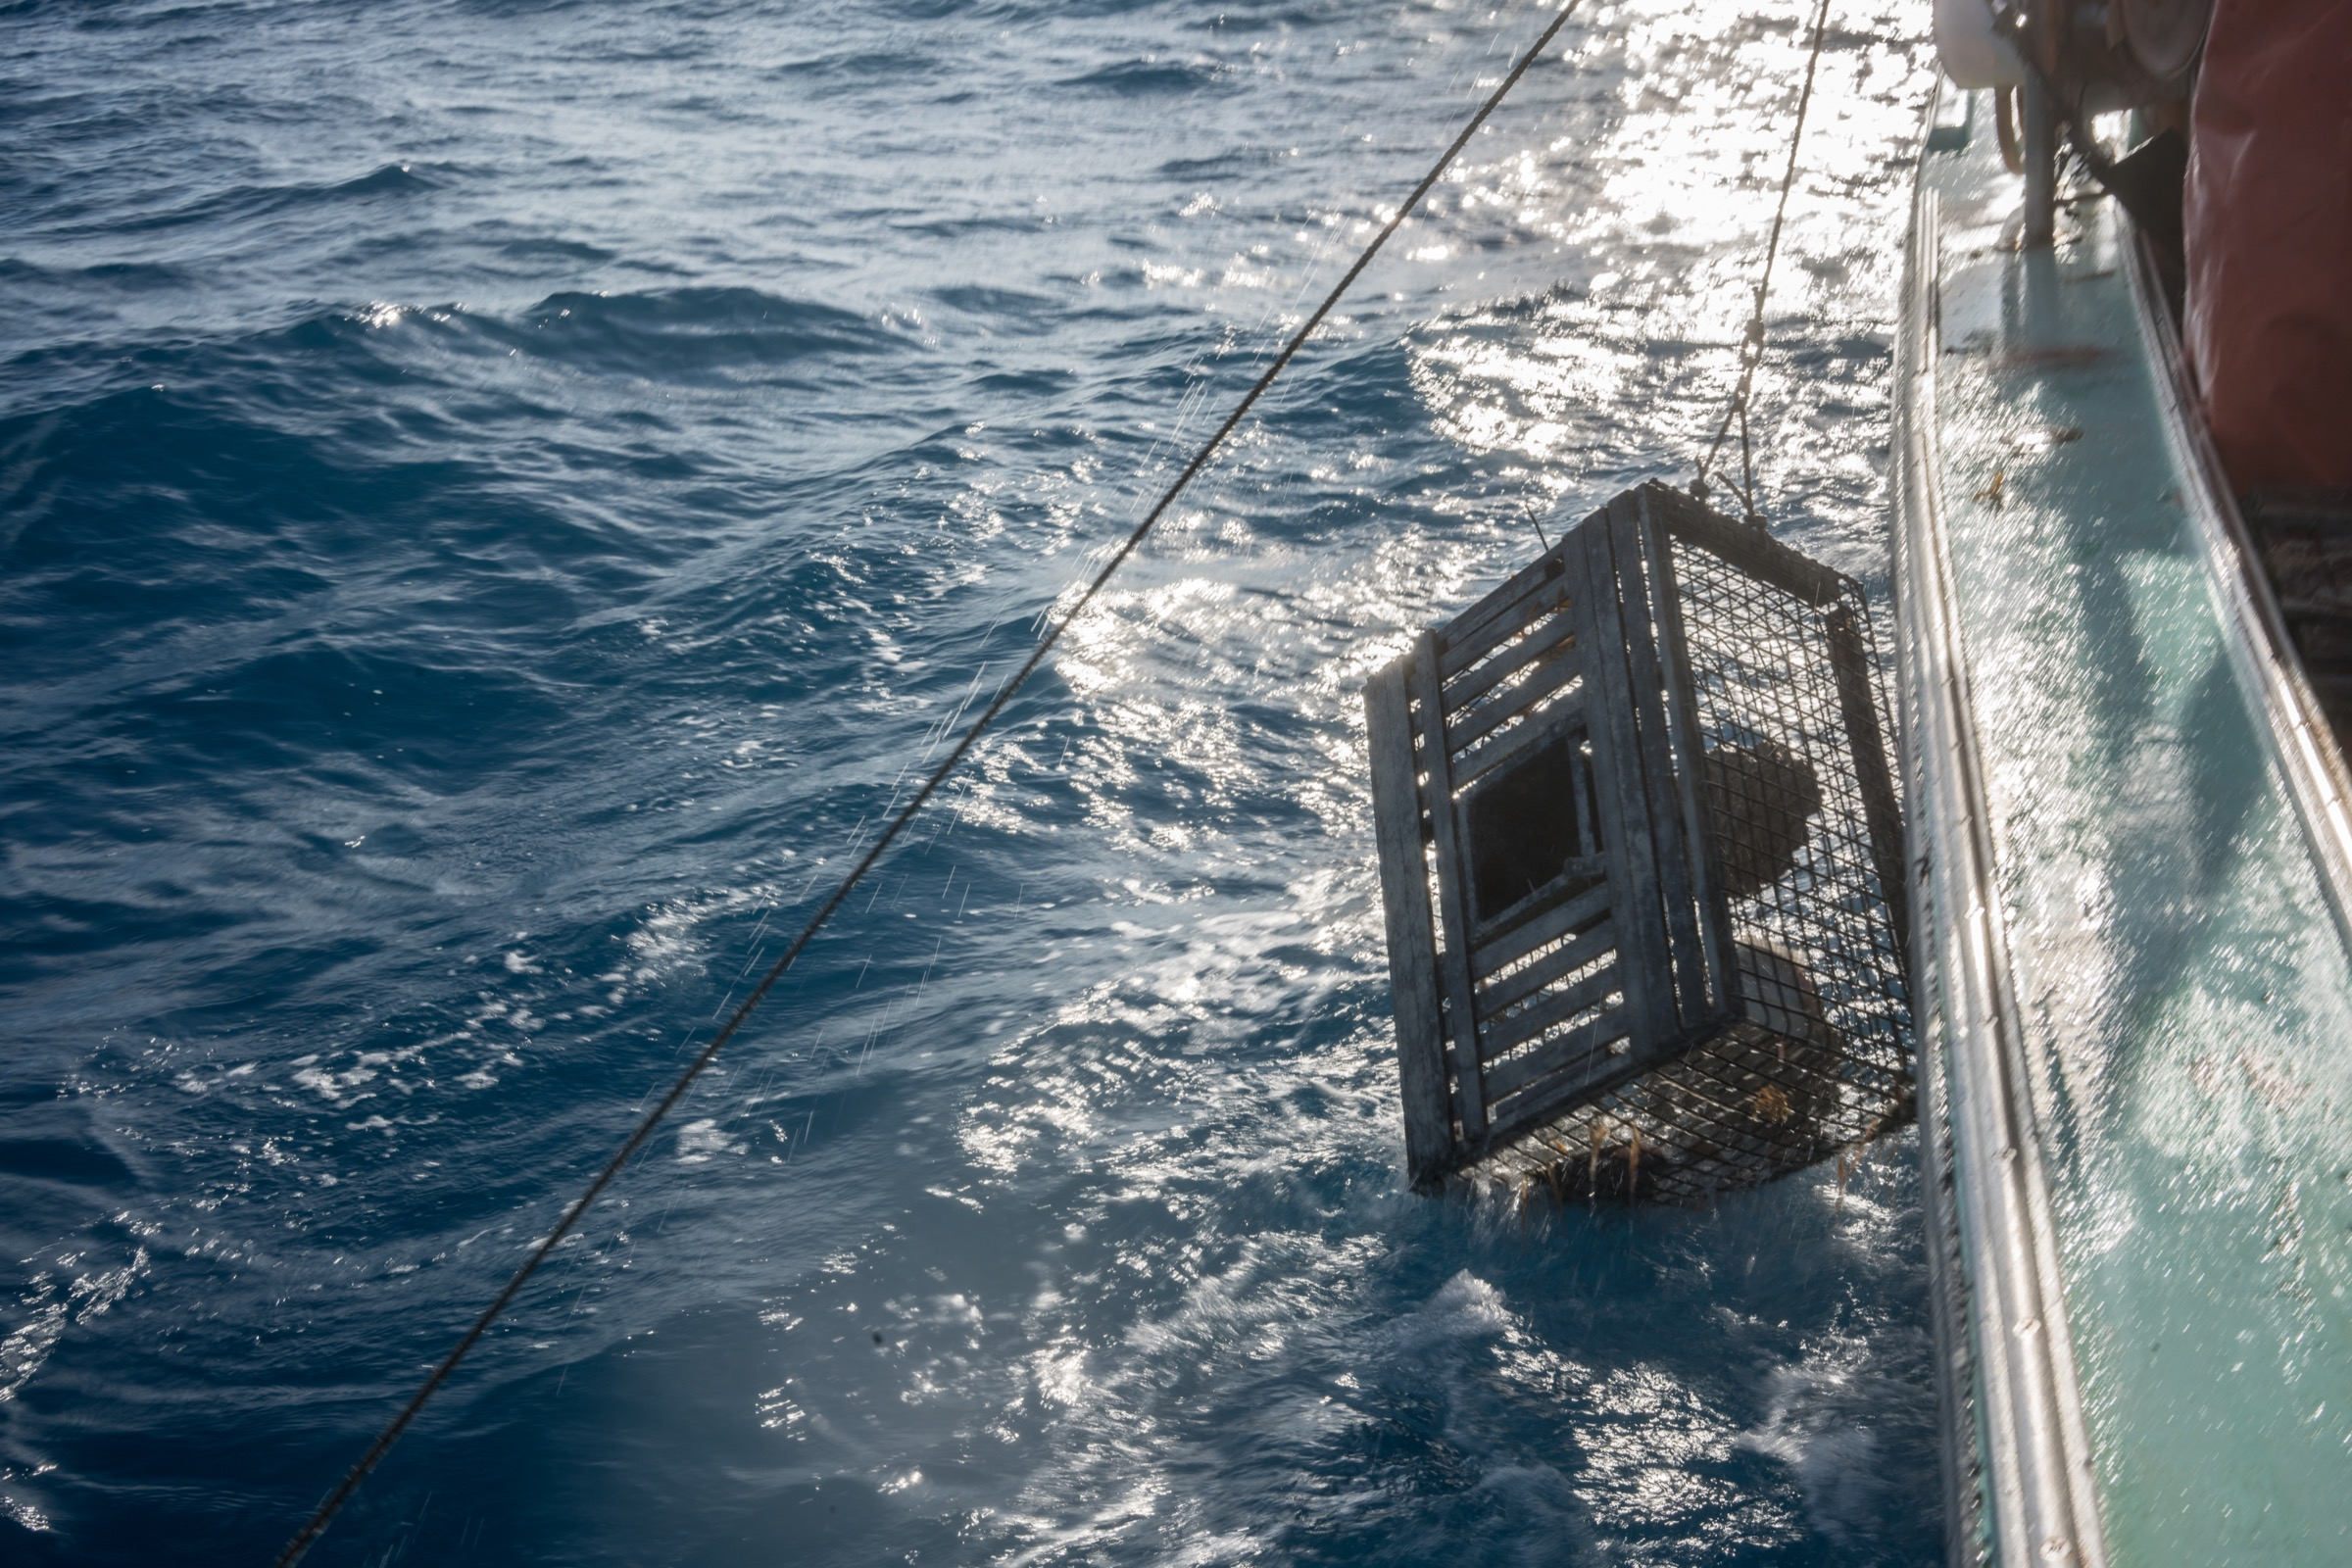 A lobster trap is lowered over the side of a lobster fishing vessel off Marathon, Florida. Photograph by Dominic Bracco II